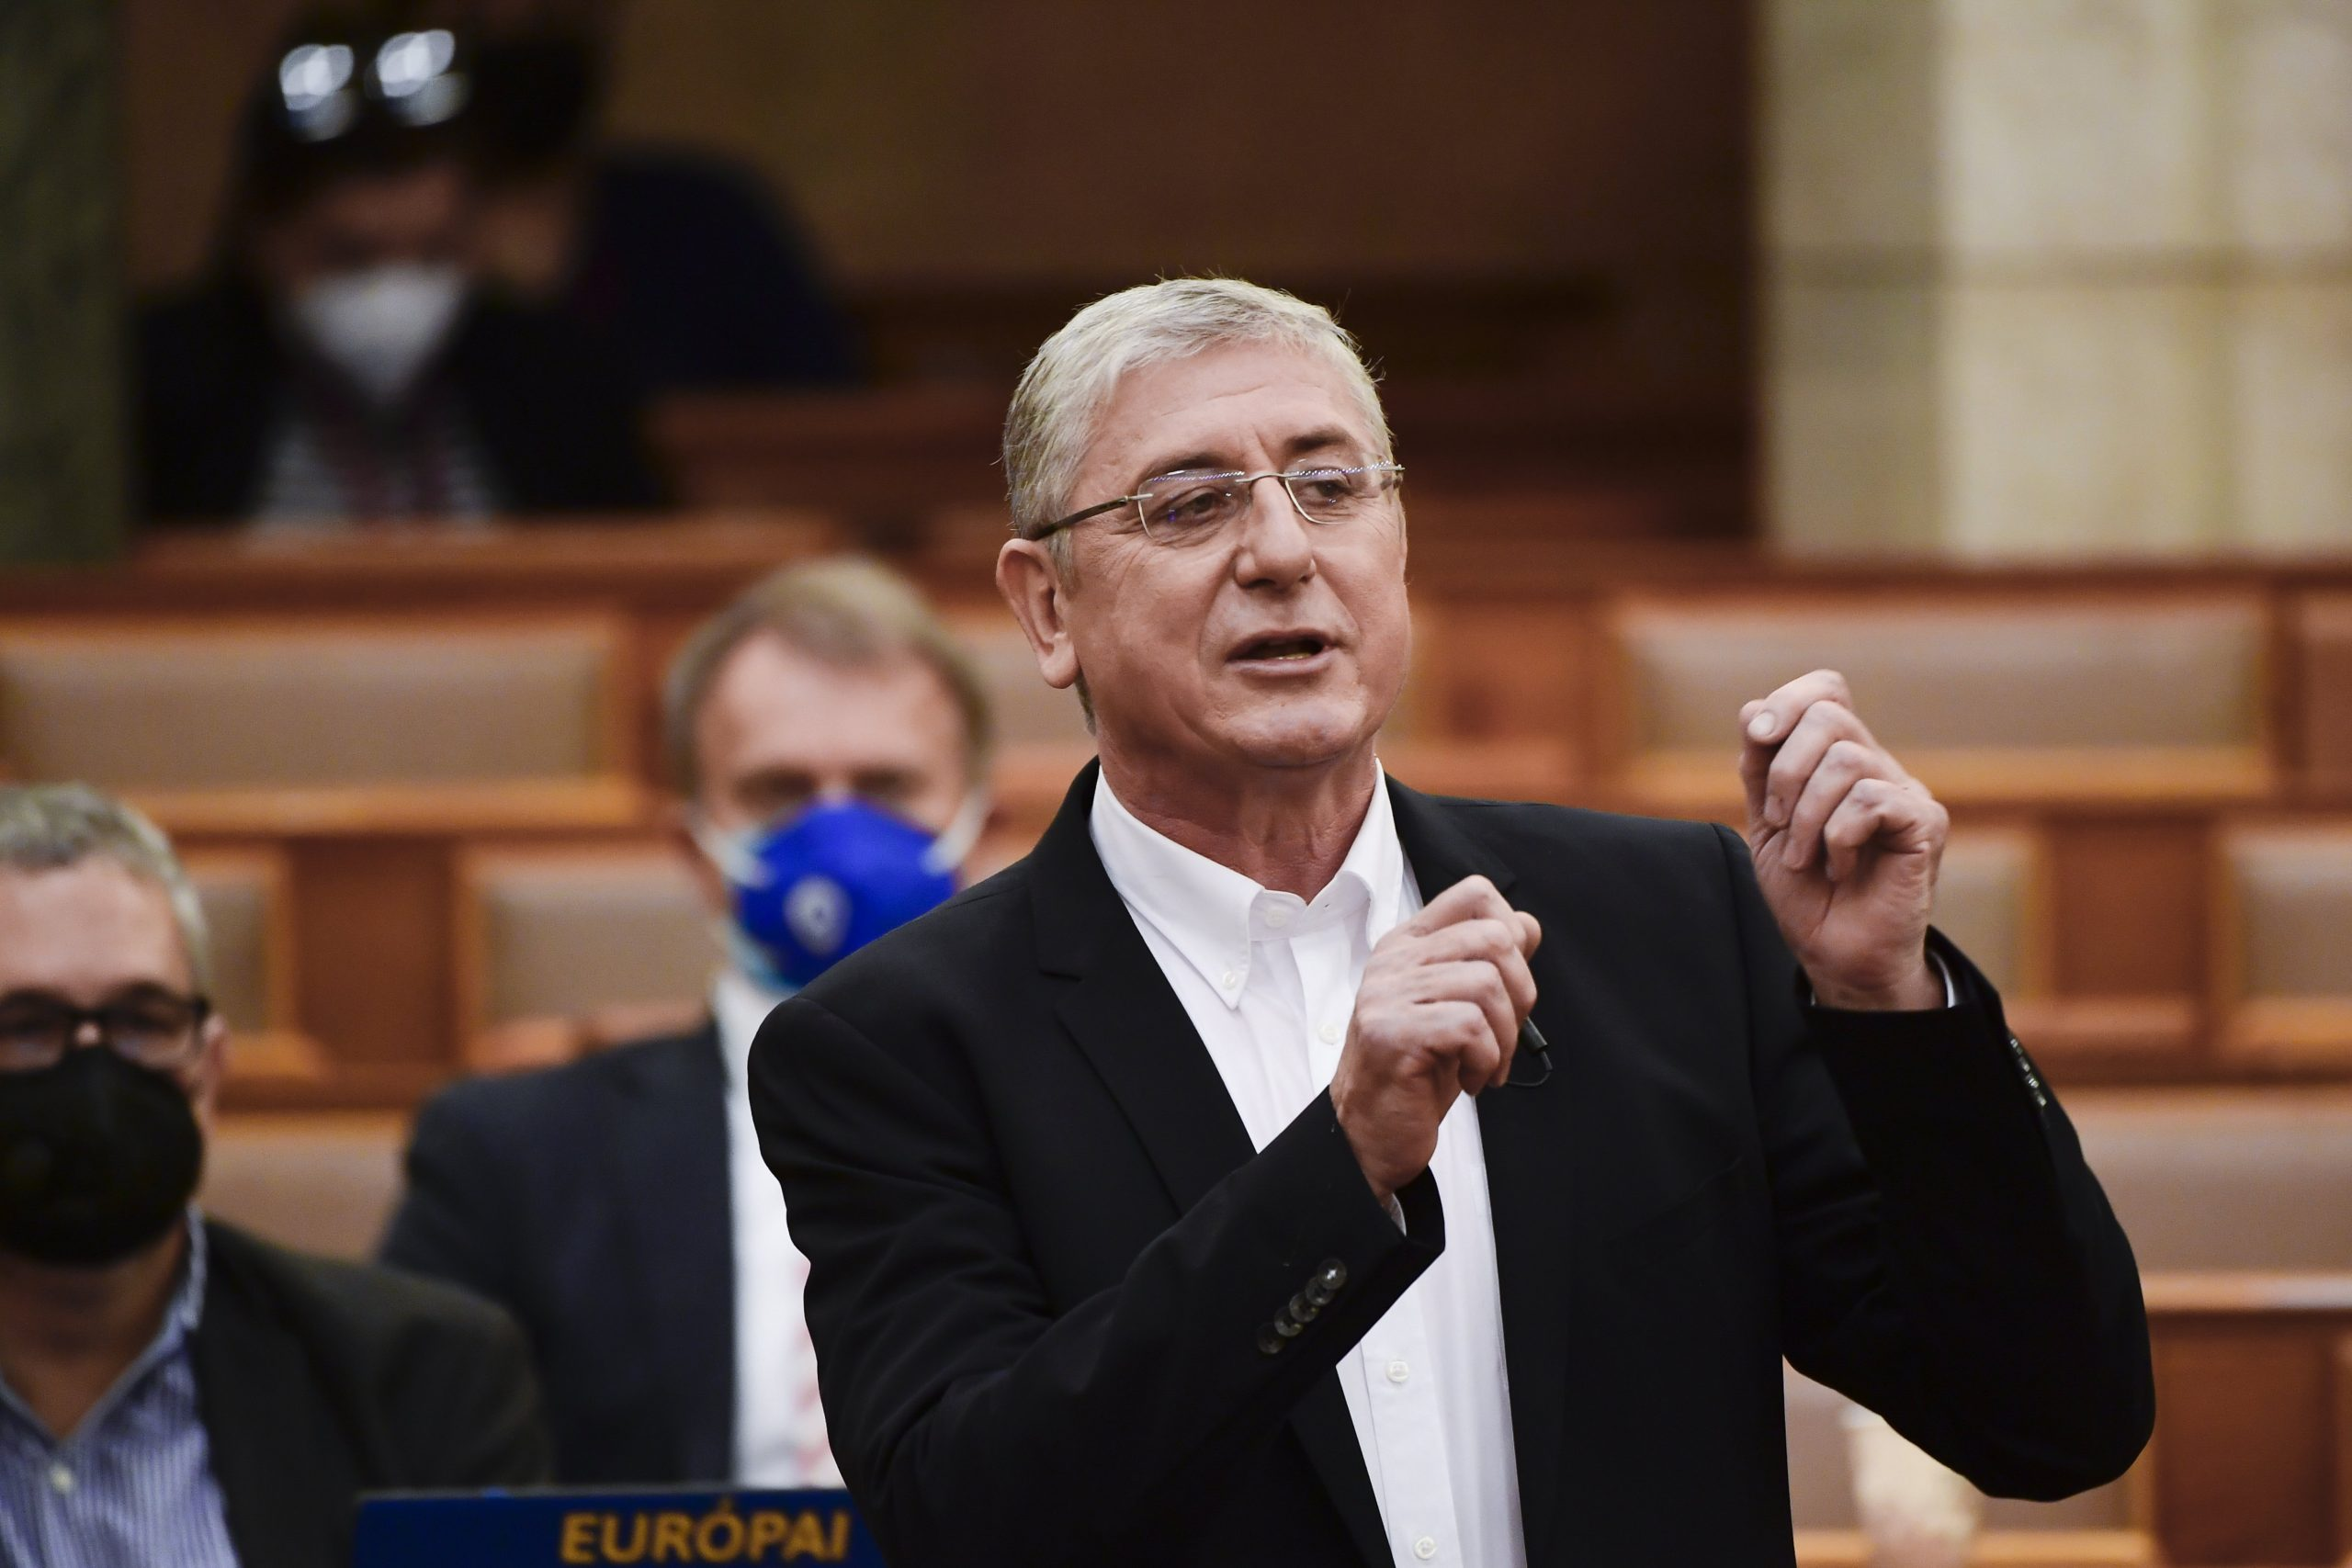 Gyurcsány Responds to Orbán's List of 'Greatest Threats to Hungary' That Includes His Name